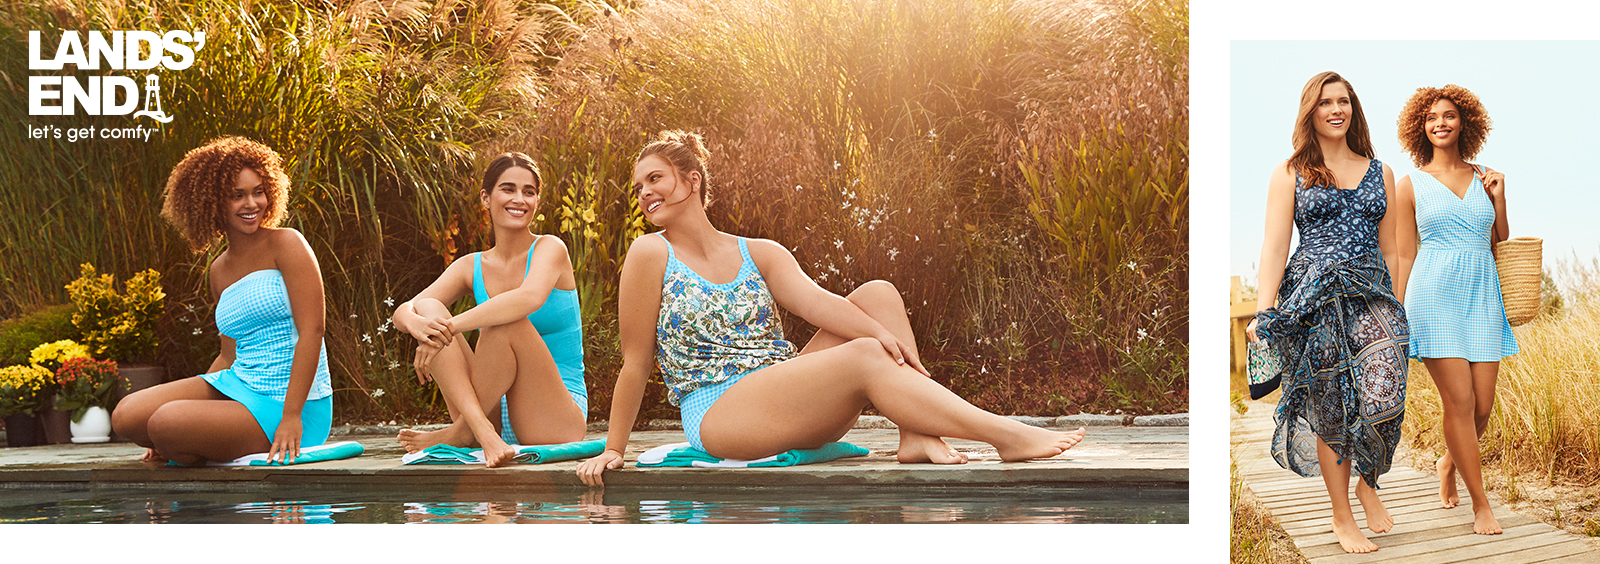 How to Choose a Swimsuit That Flatters Broad Shoulders